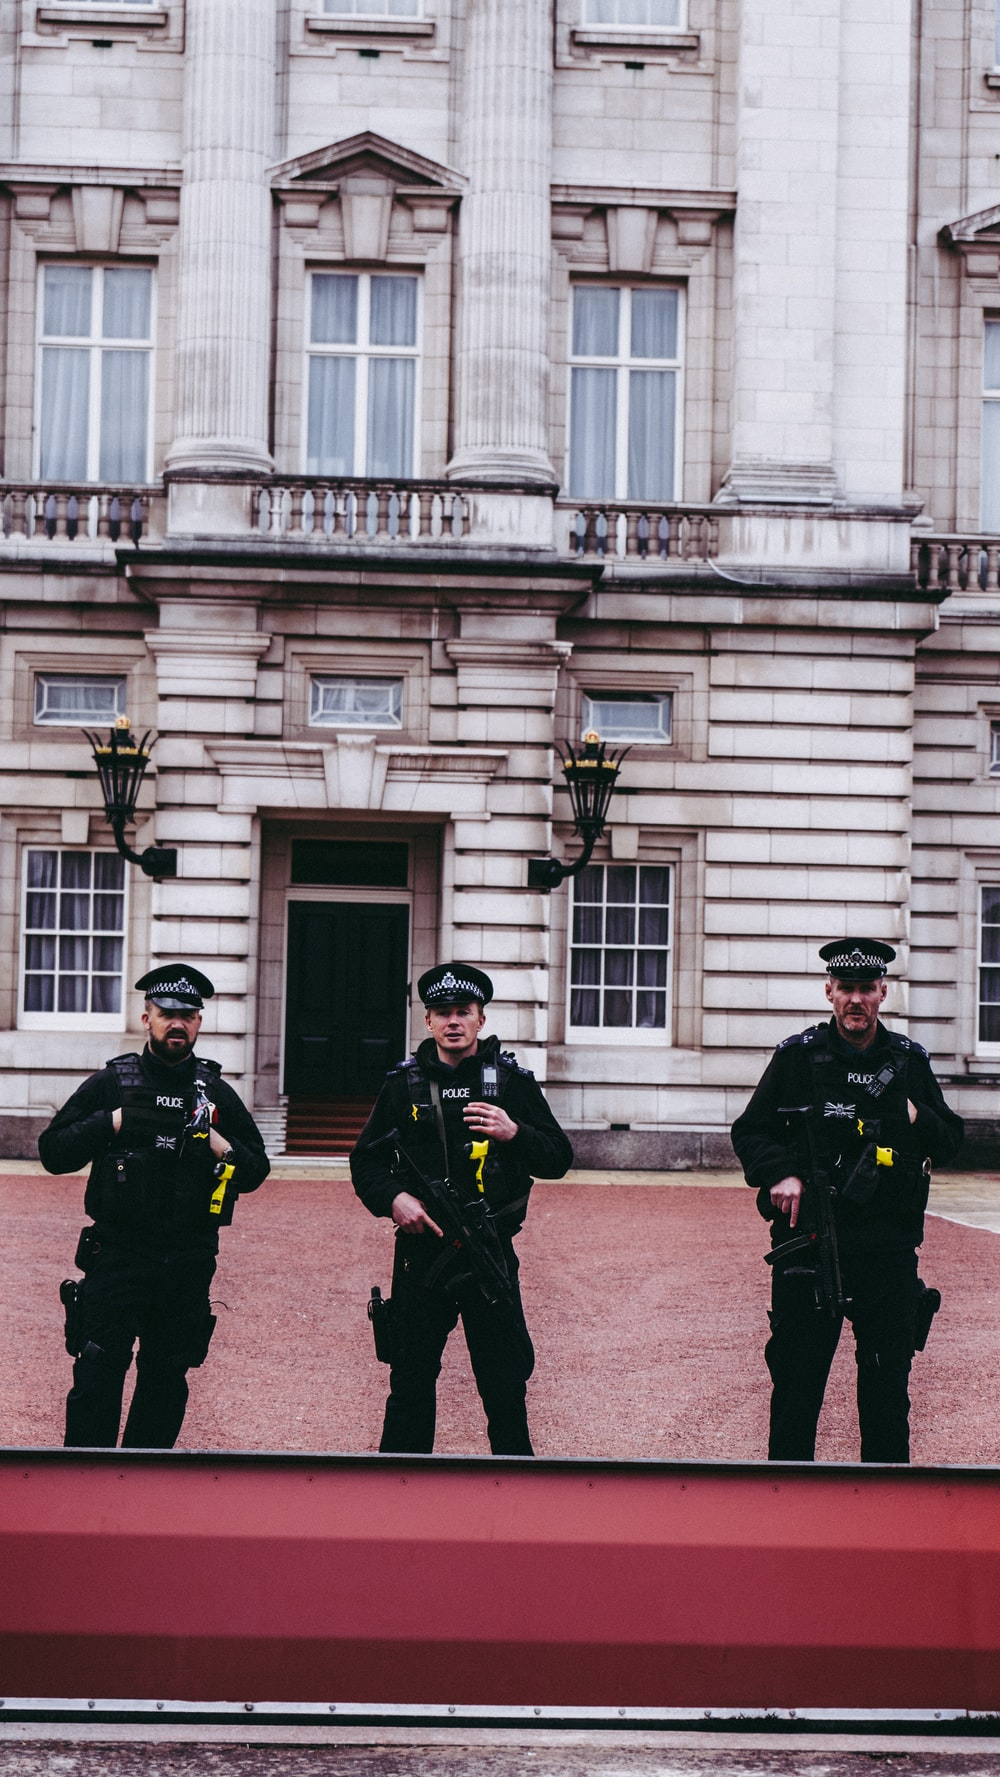 three police men standing in front of building